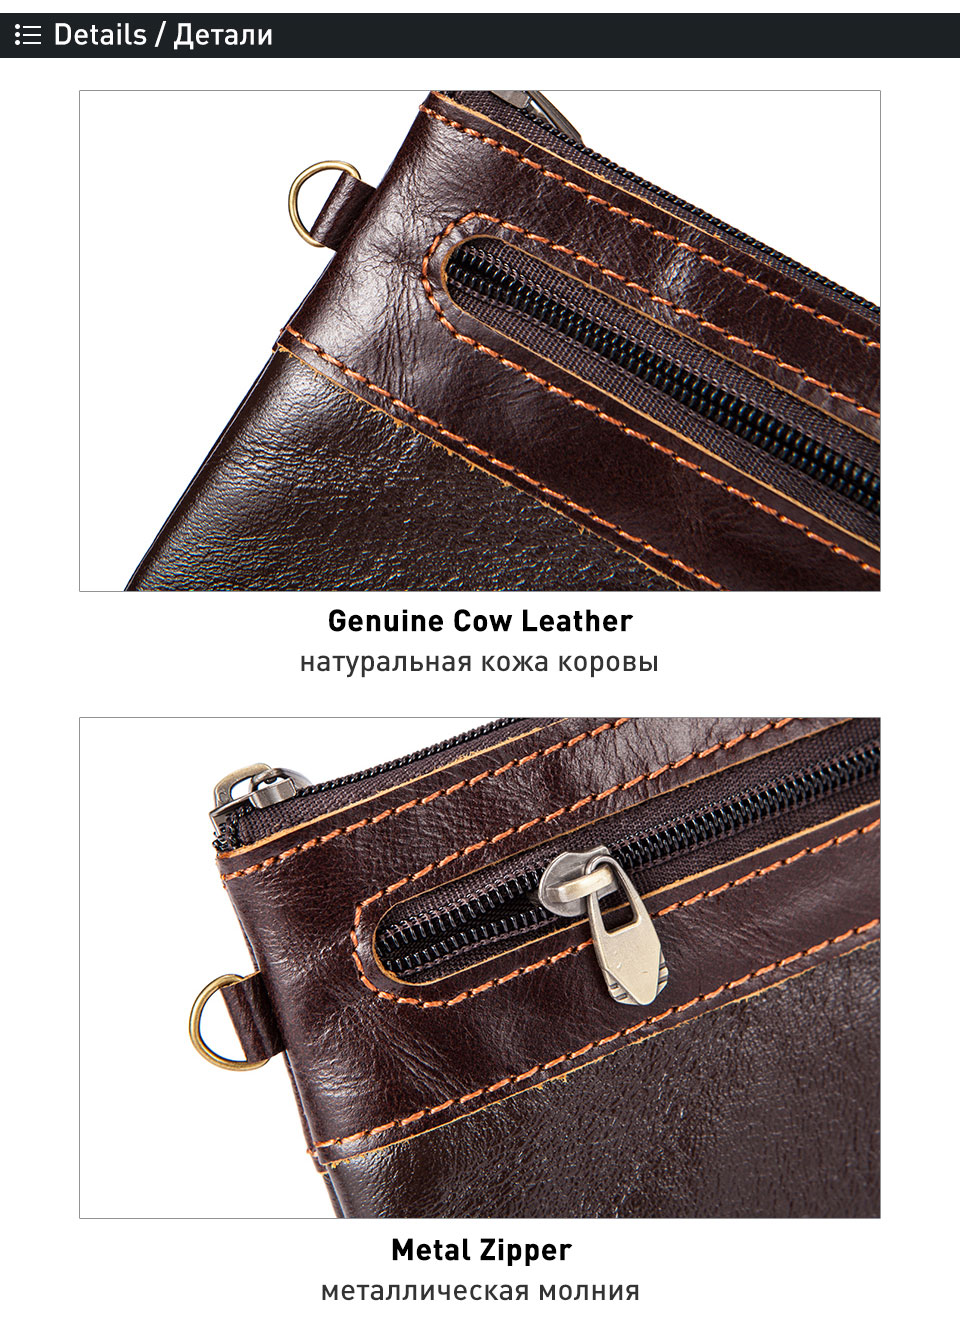 8118_05solid zipper cow leather